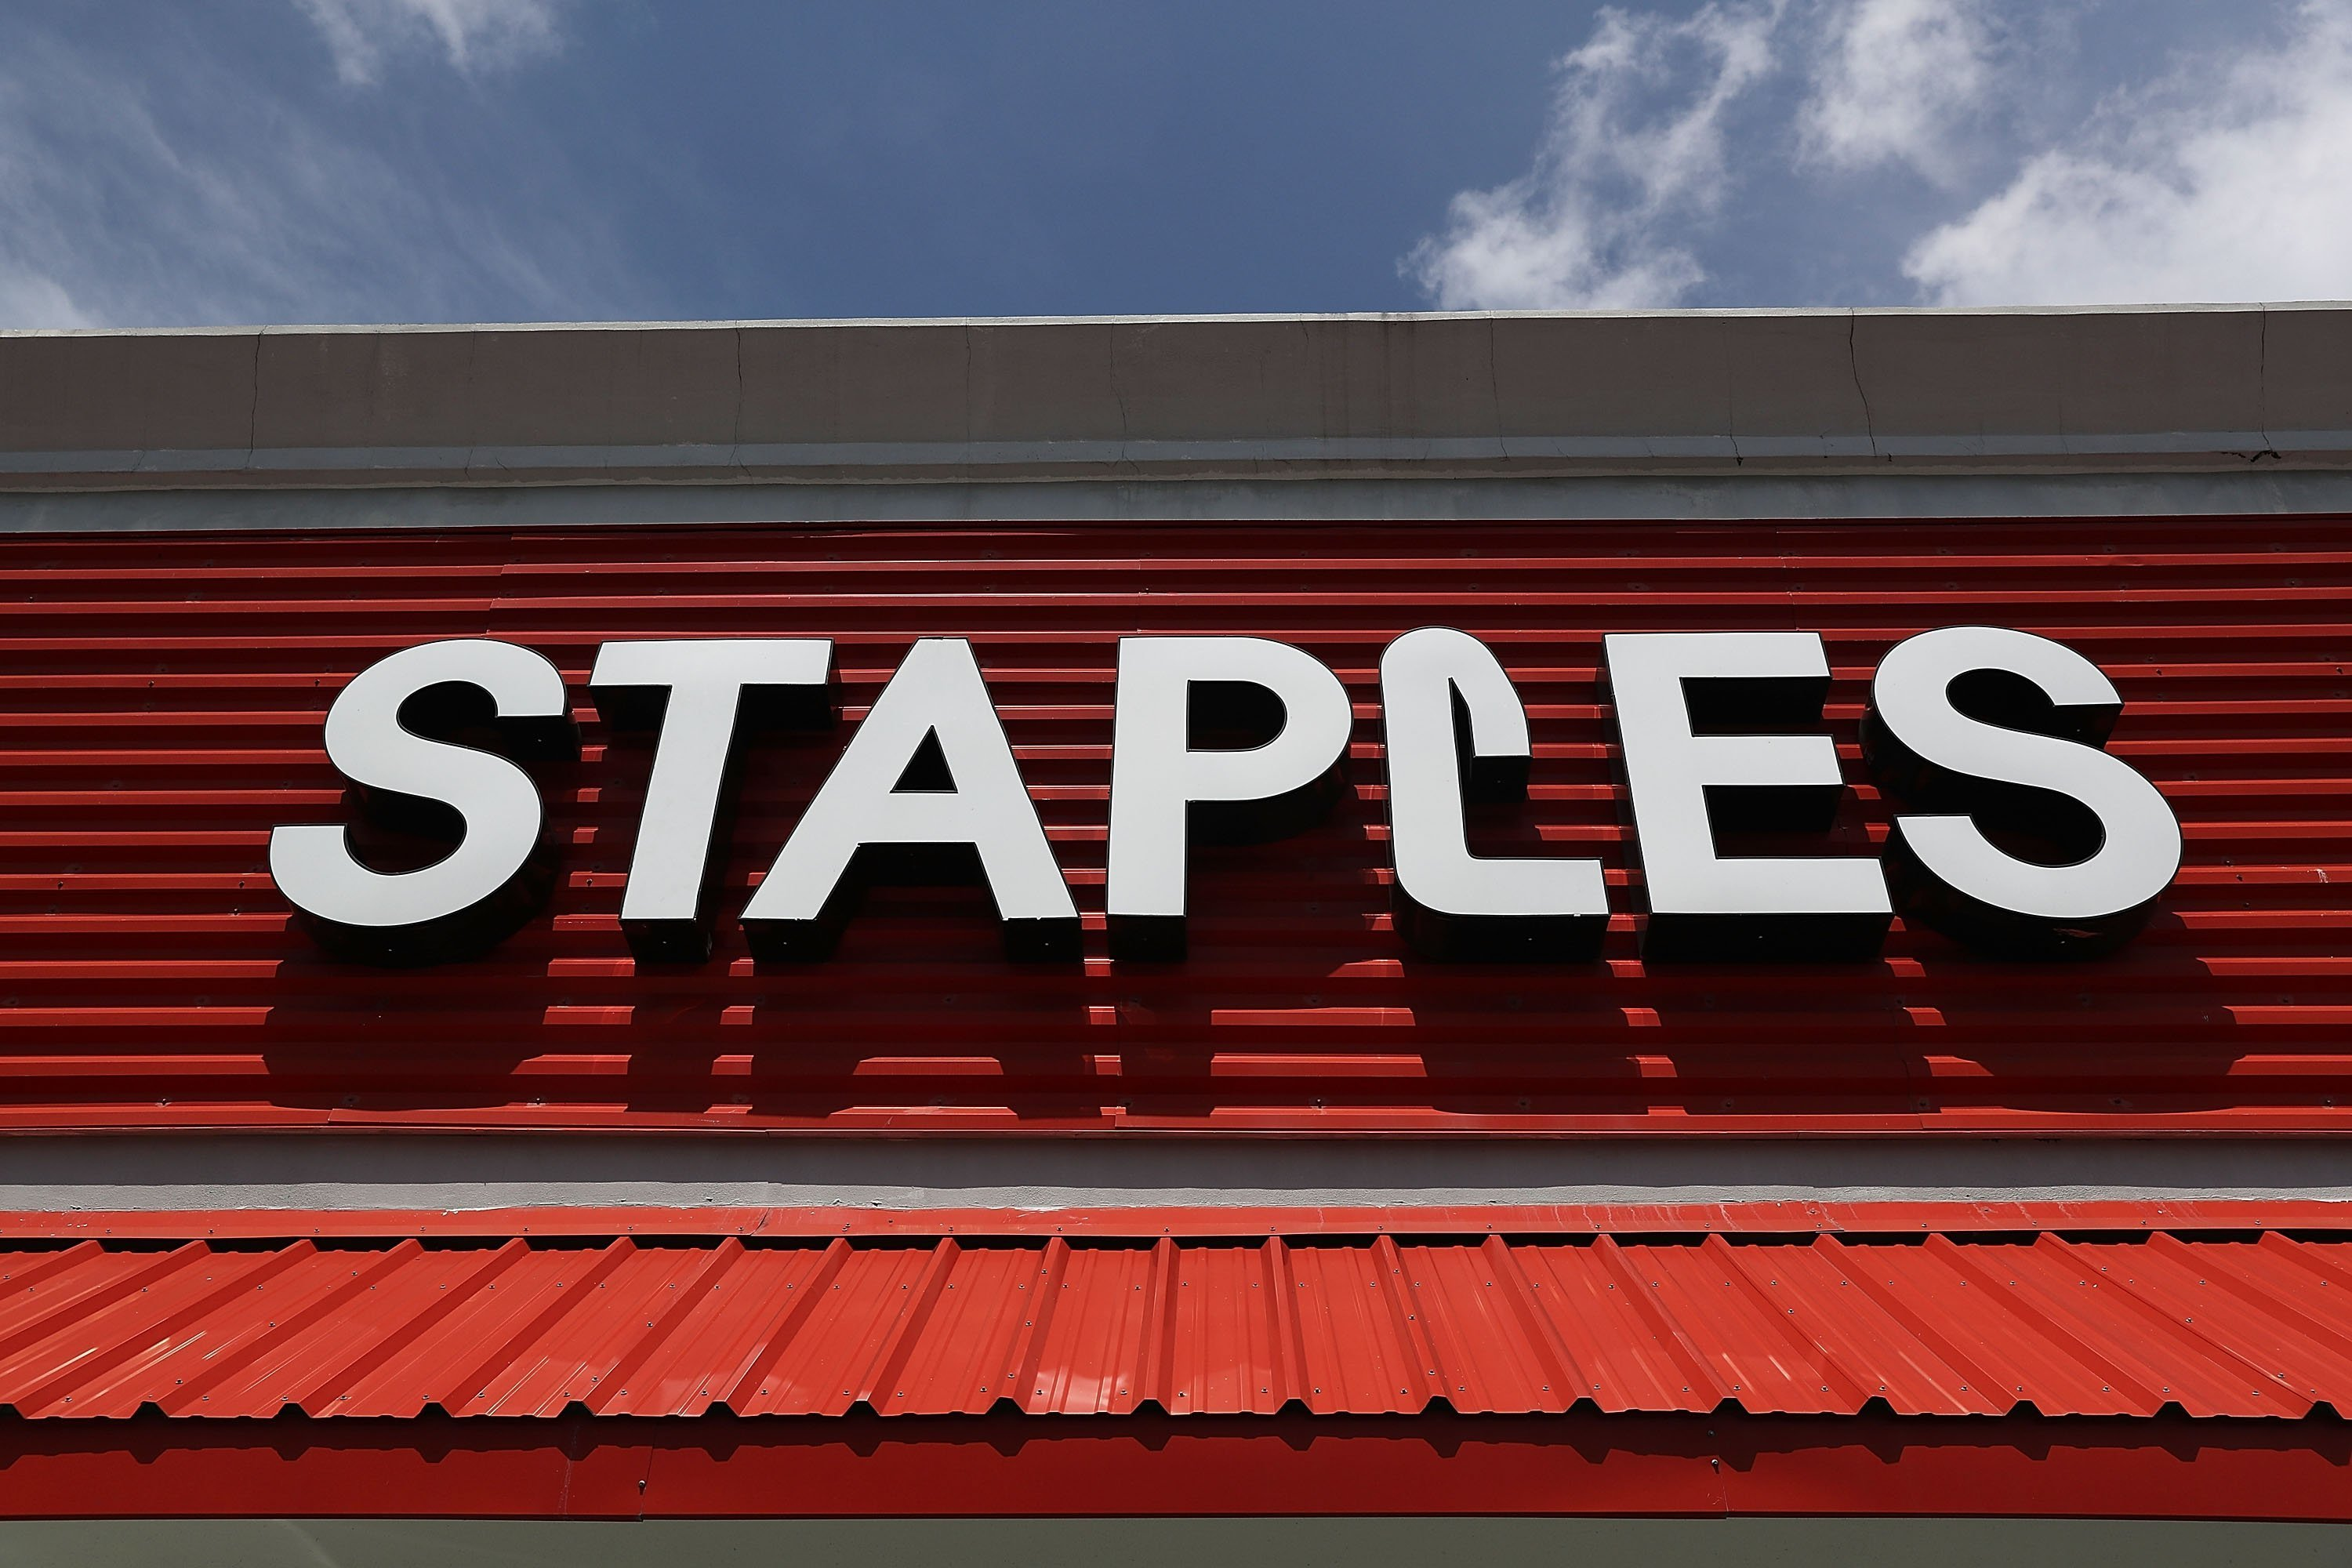 Staples Offloads European Business